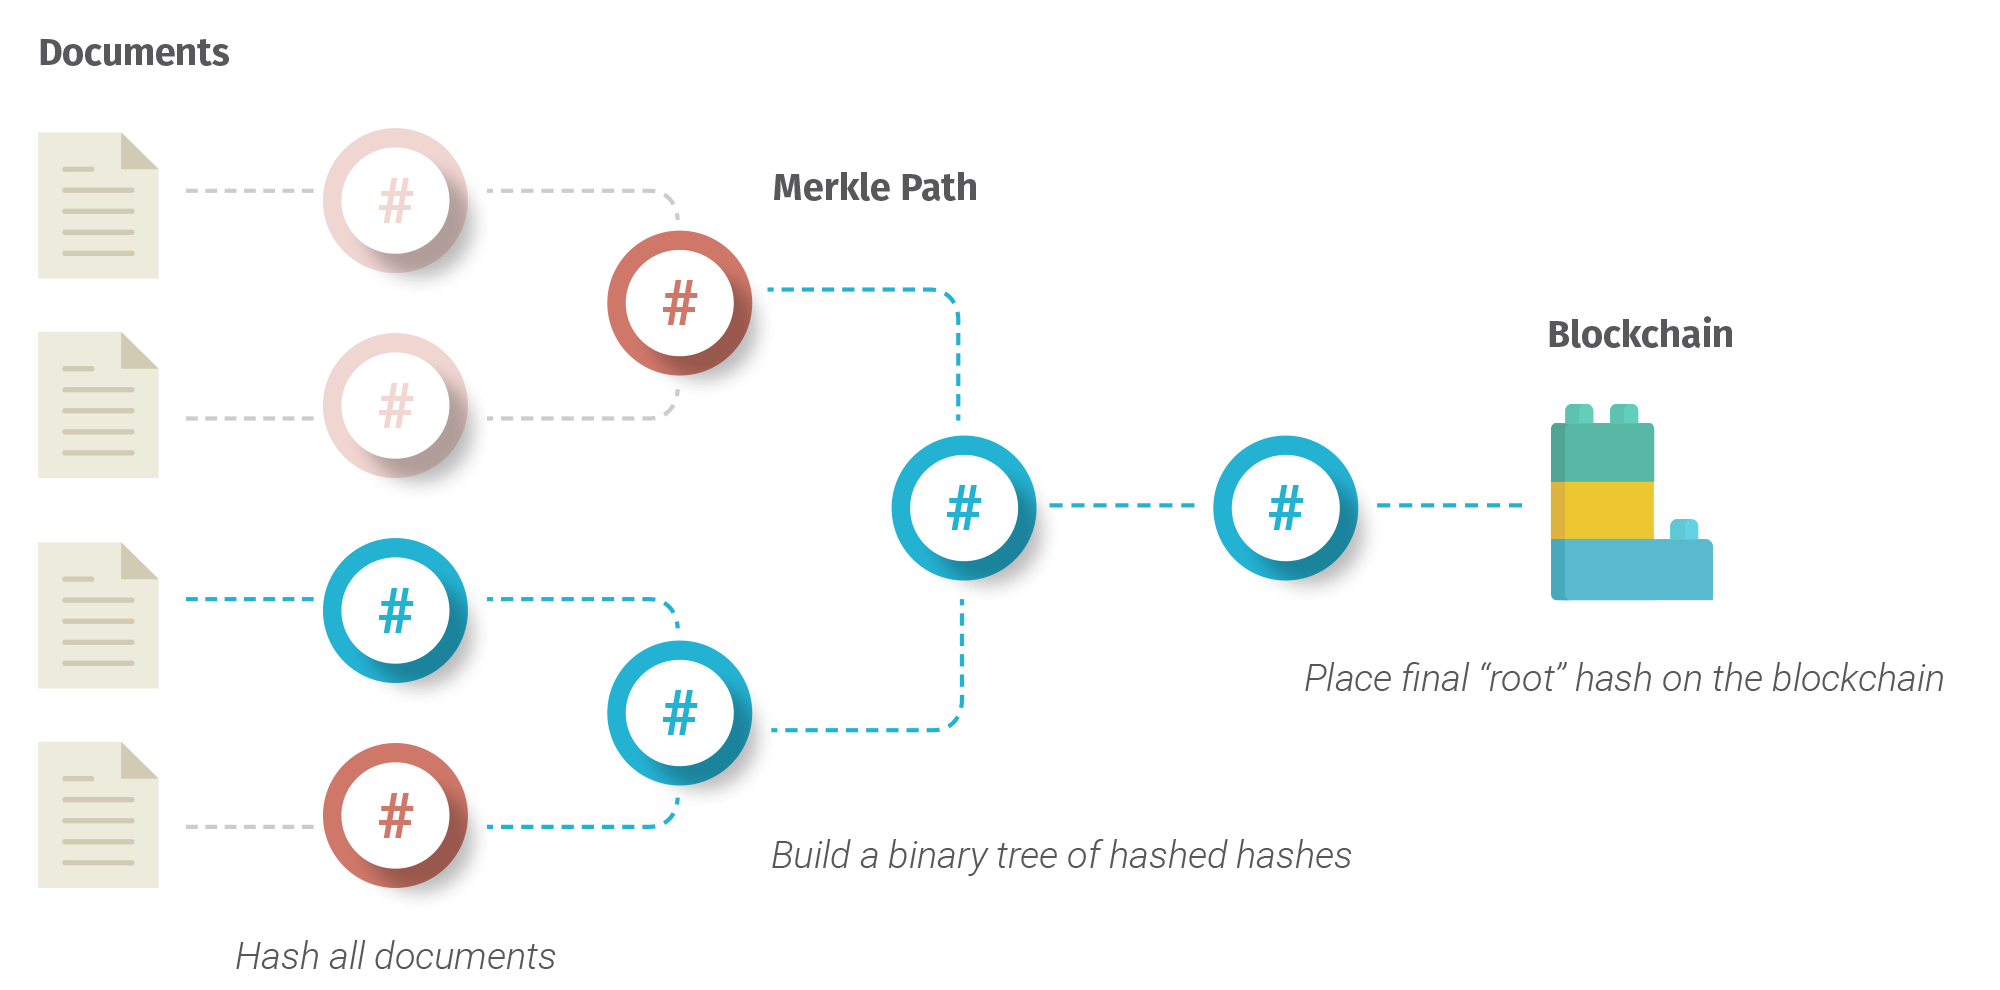 Using Merkle trees to pin many document proofs on the blockchain with a single hash